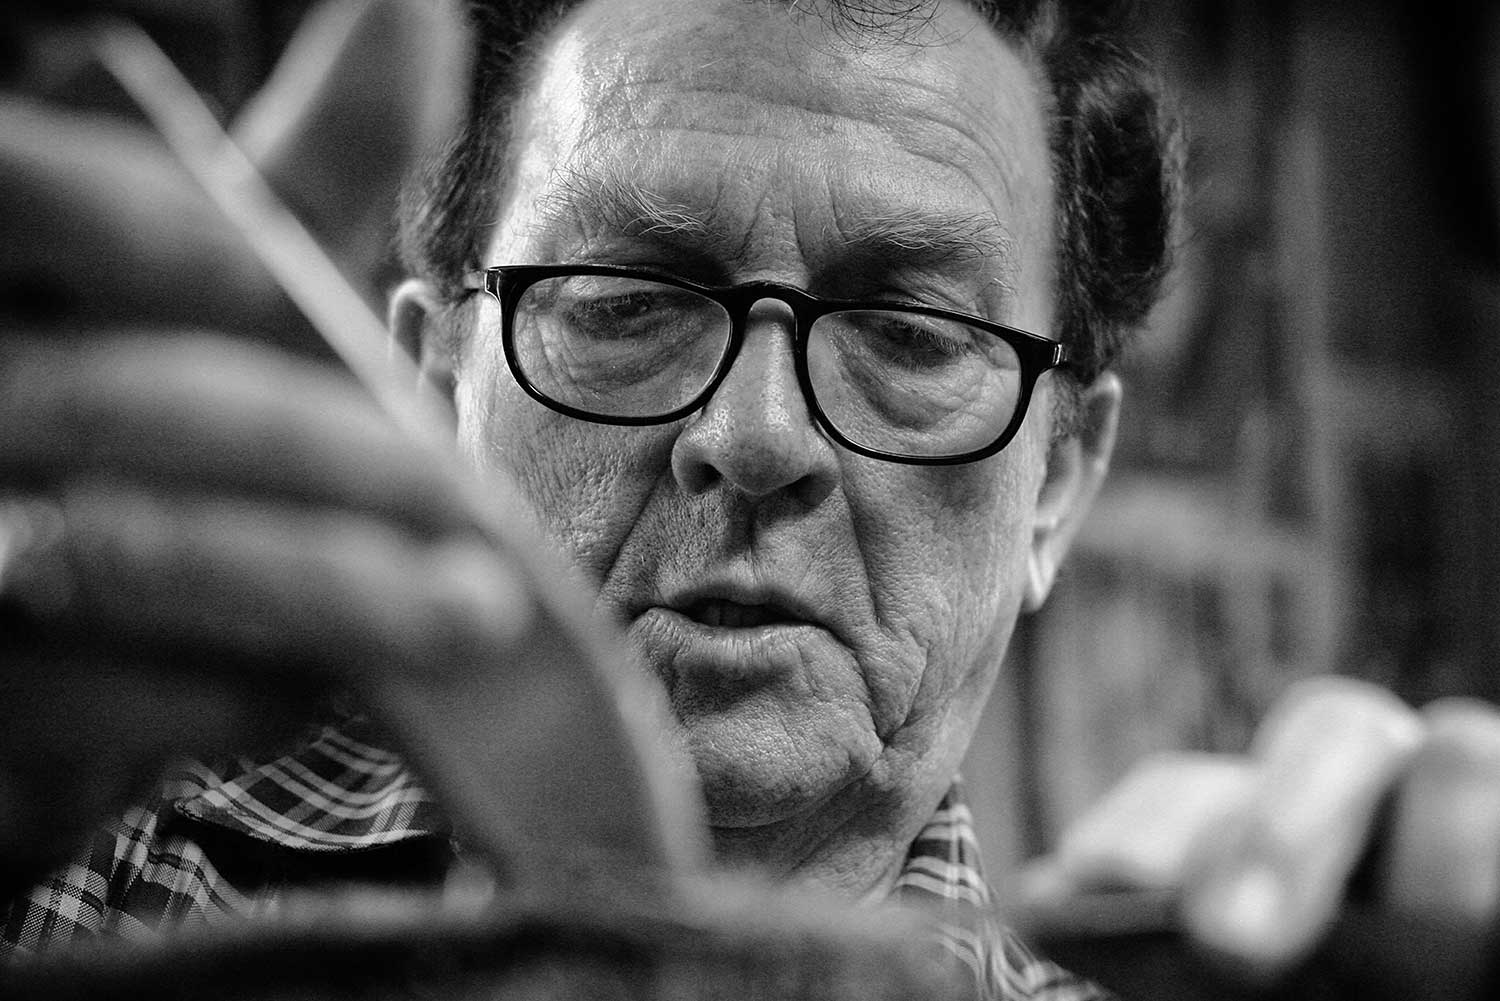 """Ray """"The Barber"""" Beeler focuses intently on the task at hand--telling stories and entertaining his customers. photo by Ben Moser - 2009"""